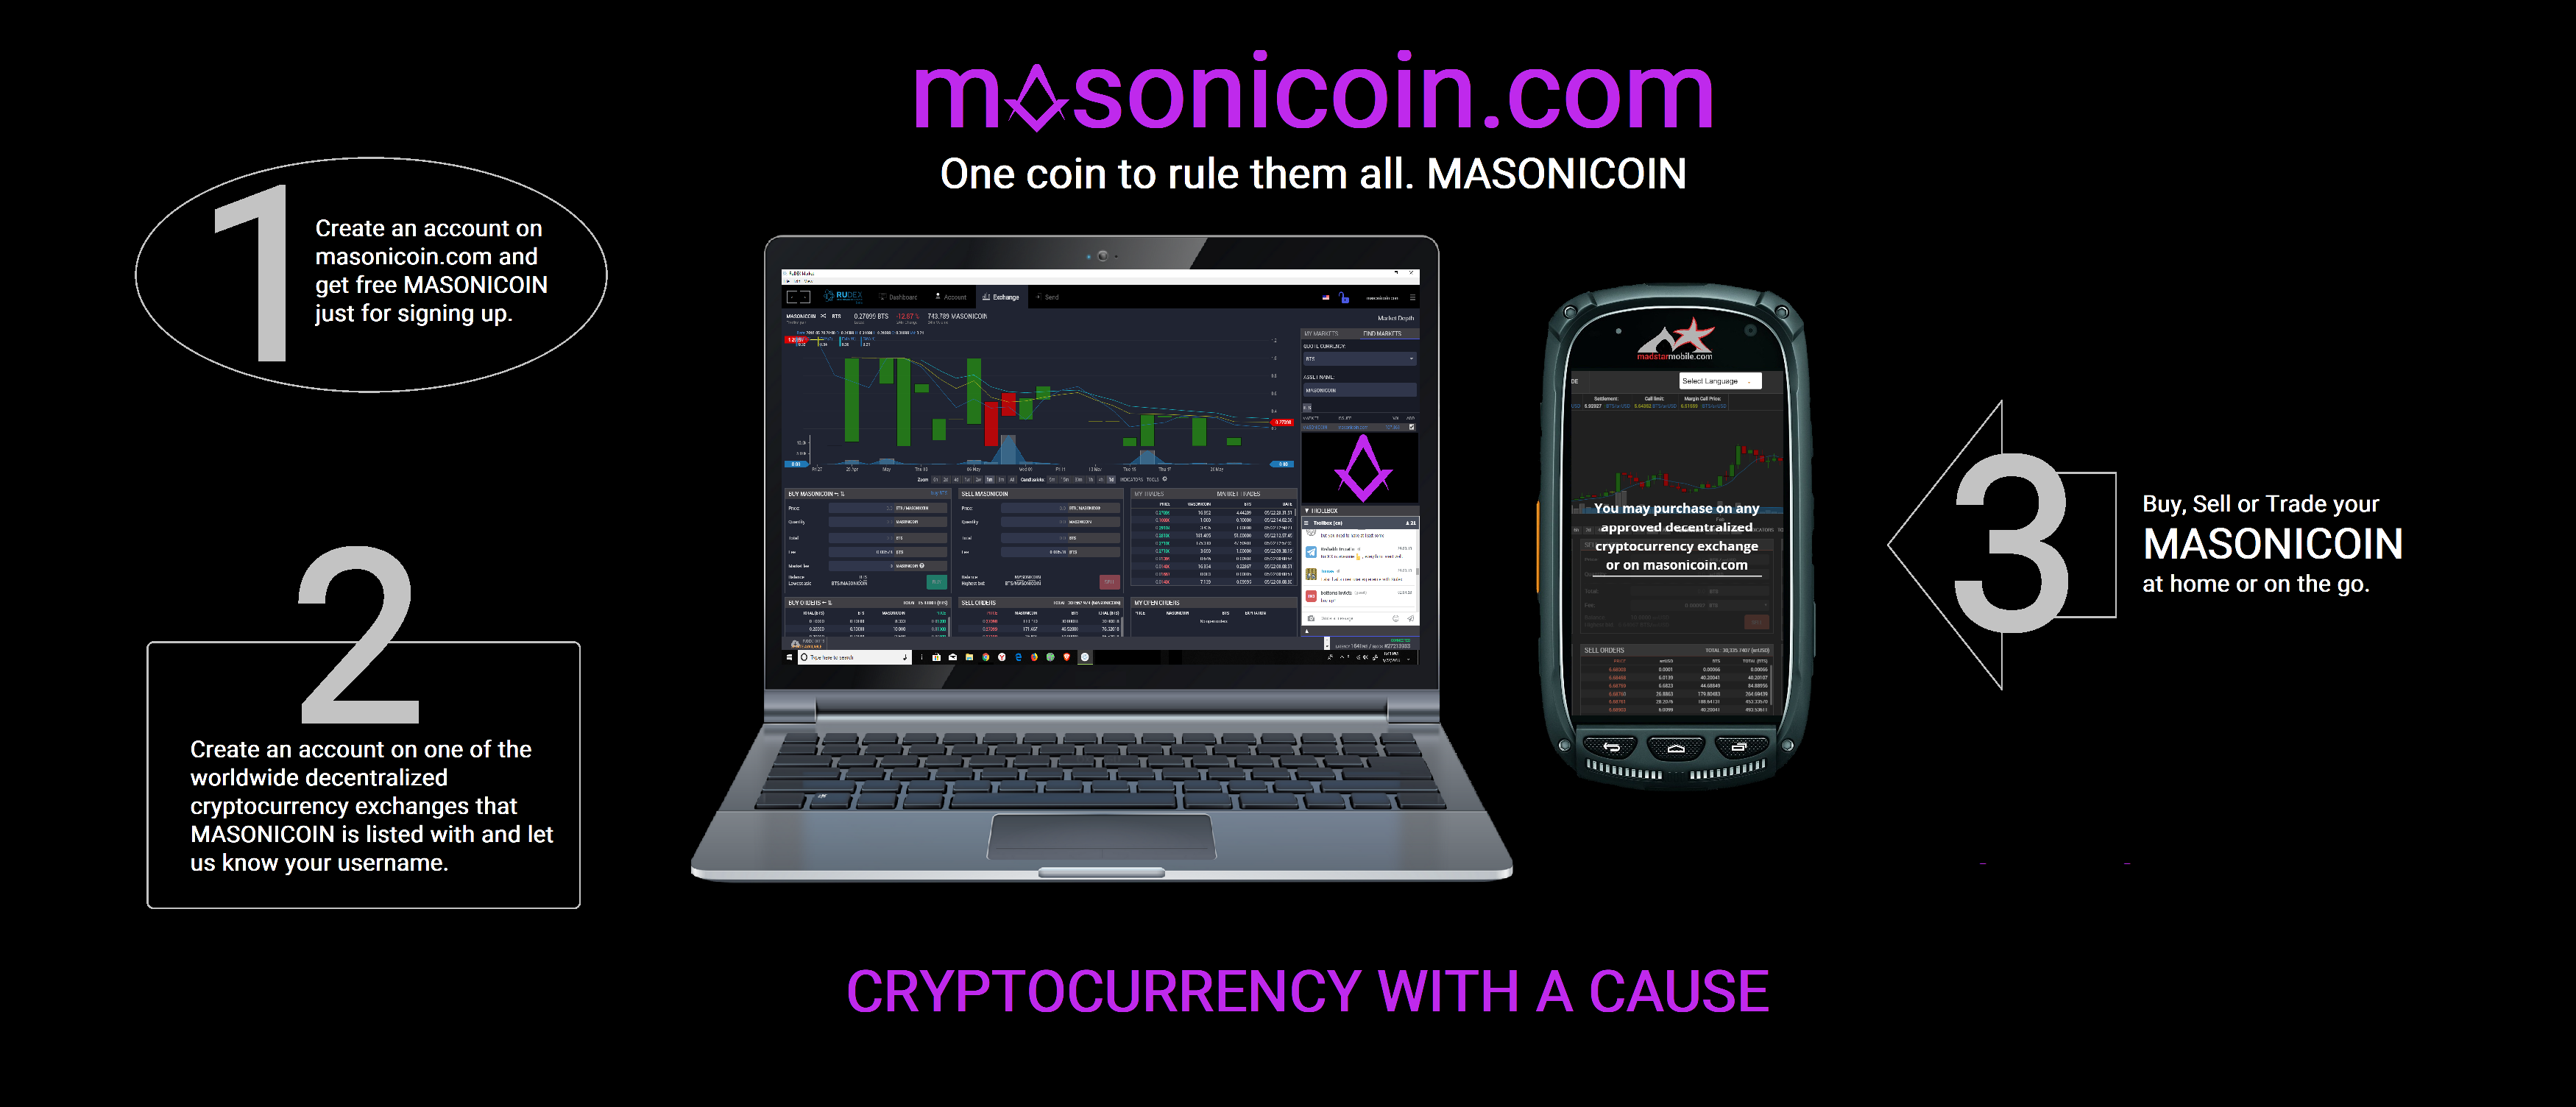 Masonicoin traded in 3 steps simplified and scalable